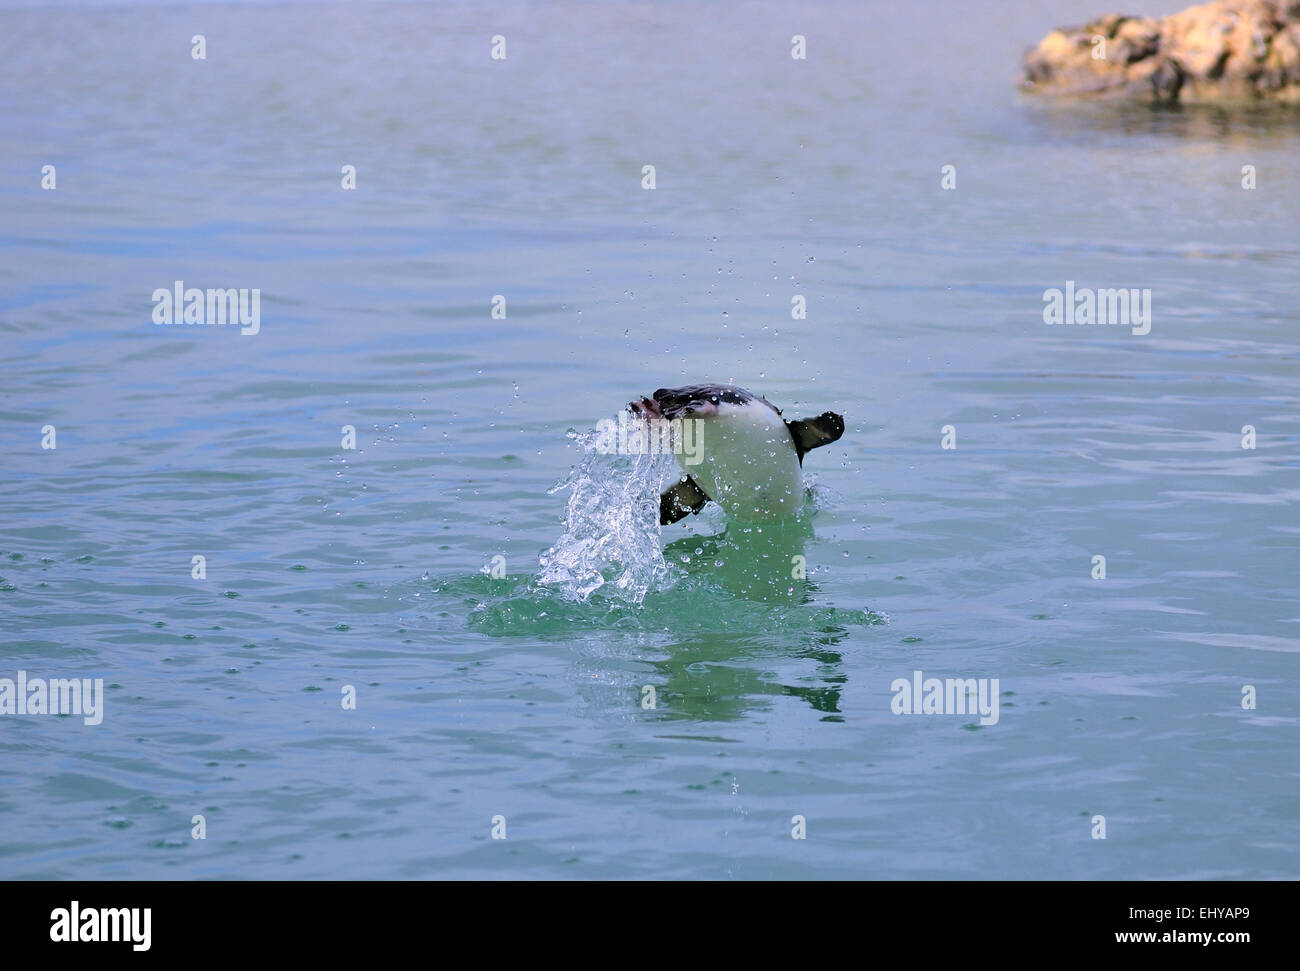 Penguin leaping through the air as it dives down into the water - Stock Image